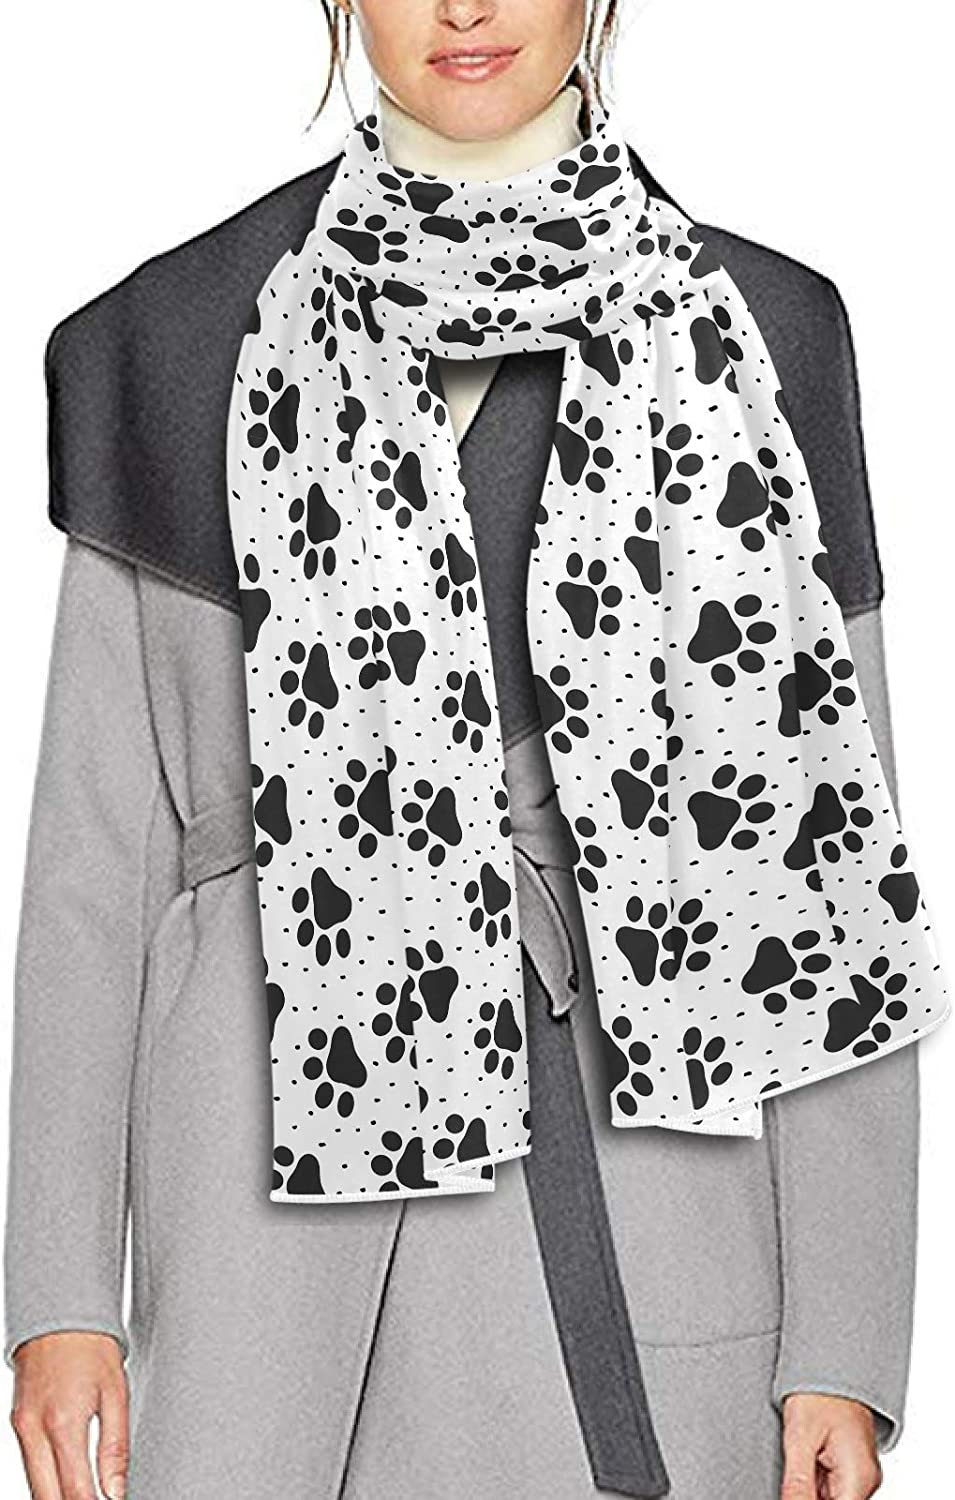 Scarf for Women and Men Pet Paw Animal Blanket Shawl Scarves Wraps Warm soft Winter Oversized Scarves Lightweight